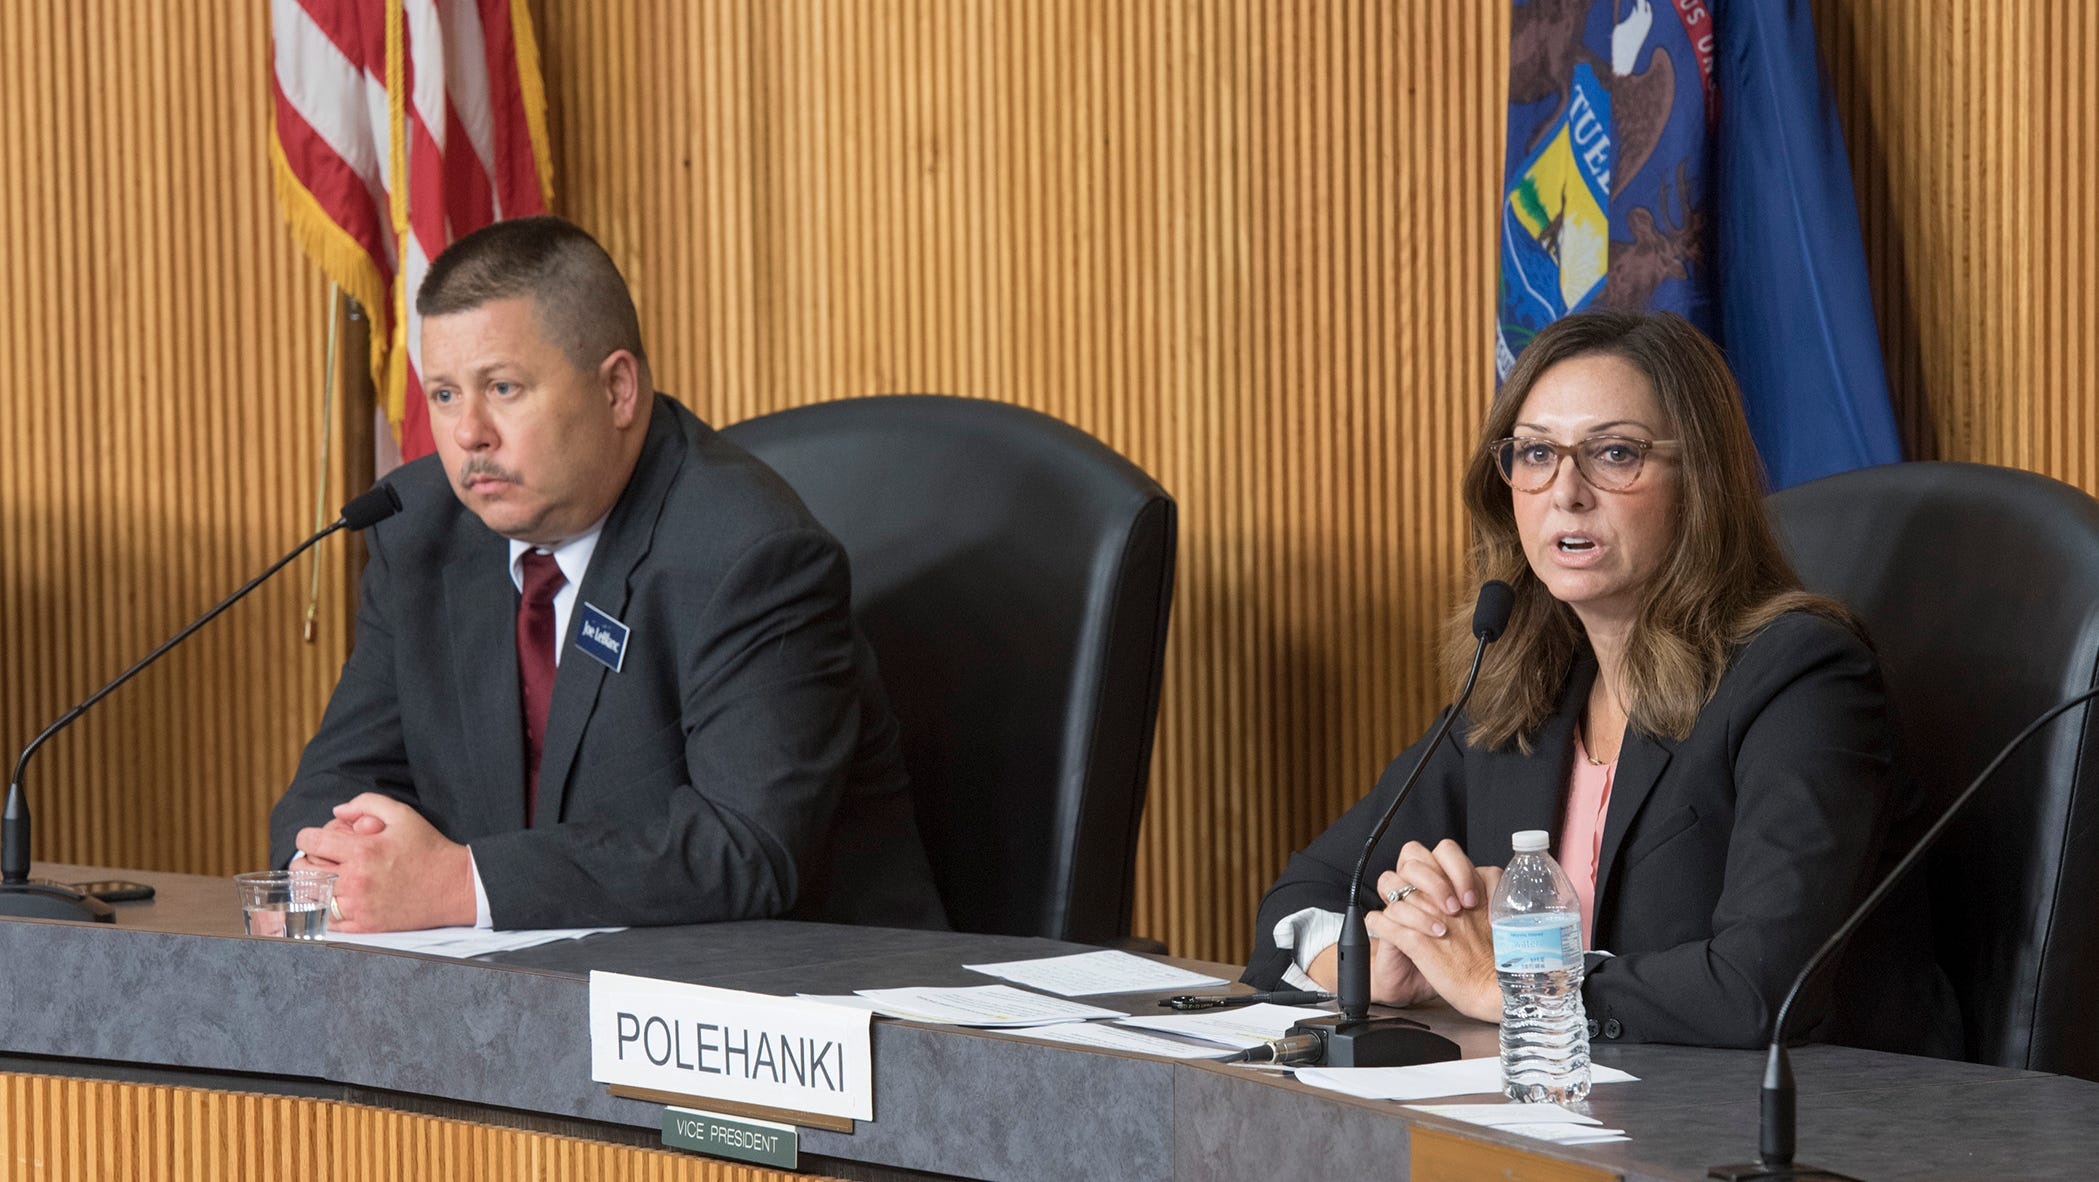 Candidates for state senate in the 7th district, Joe LeBlanc for the Libertarian Party, and Dayna Polehanki, Democratic Party nominee, speaking at the League of Women Voters forum in Livonia. Republican candidate Laura Cox did not attend the forum.